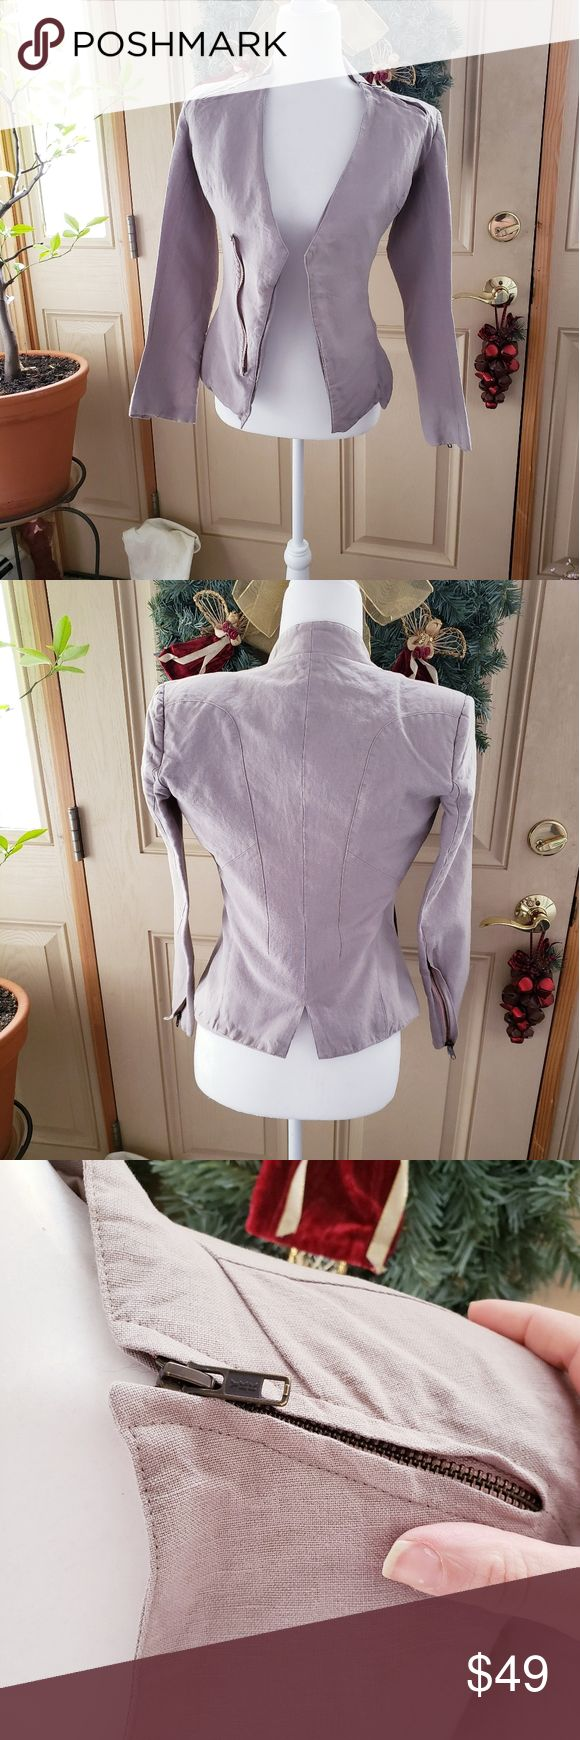 Improvd Gray Beige Motto Jacket Womens Size Small Jackets For Women Womens Sizes Clothes Design [ 1740 x 580 Pixel ]